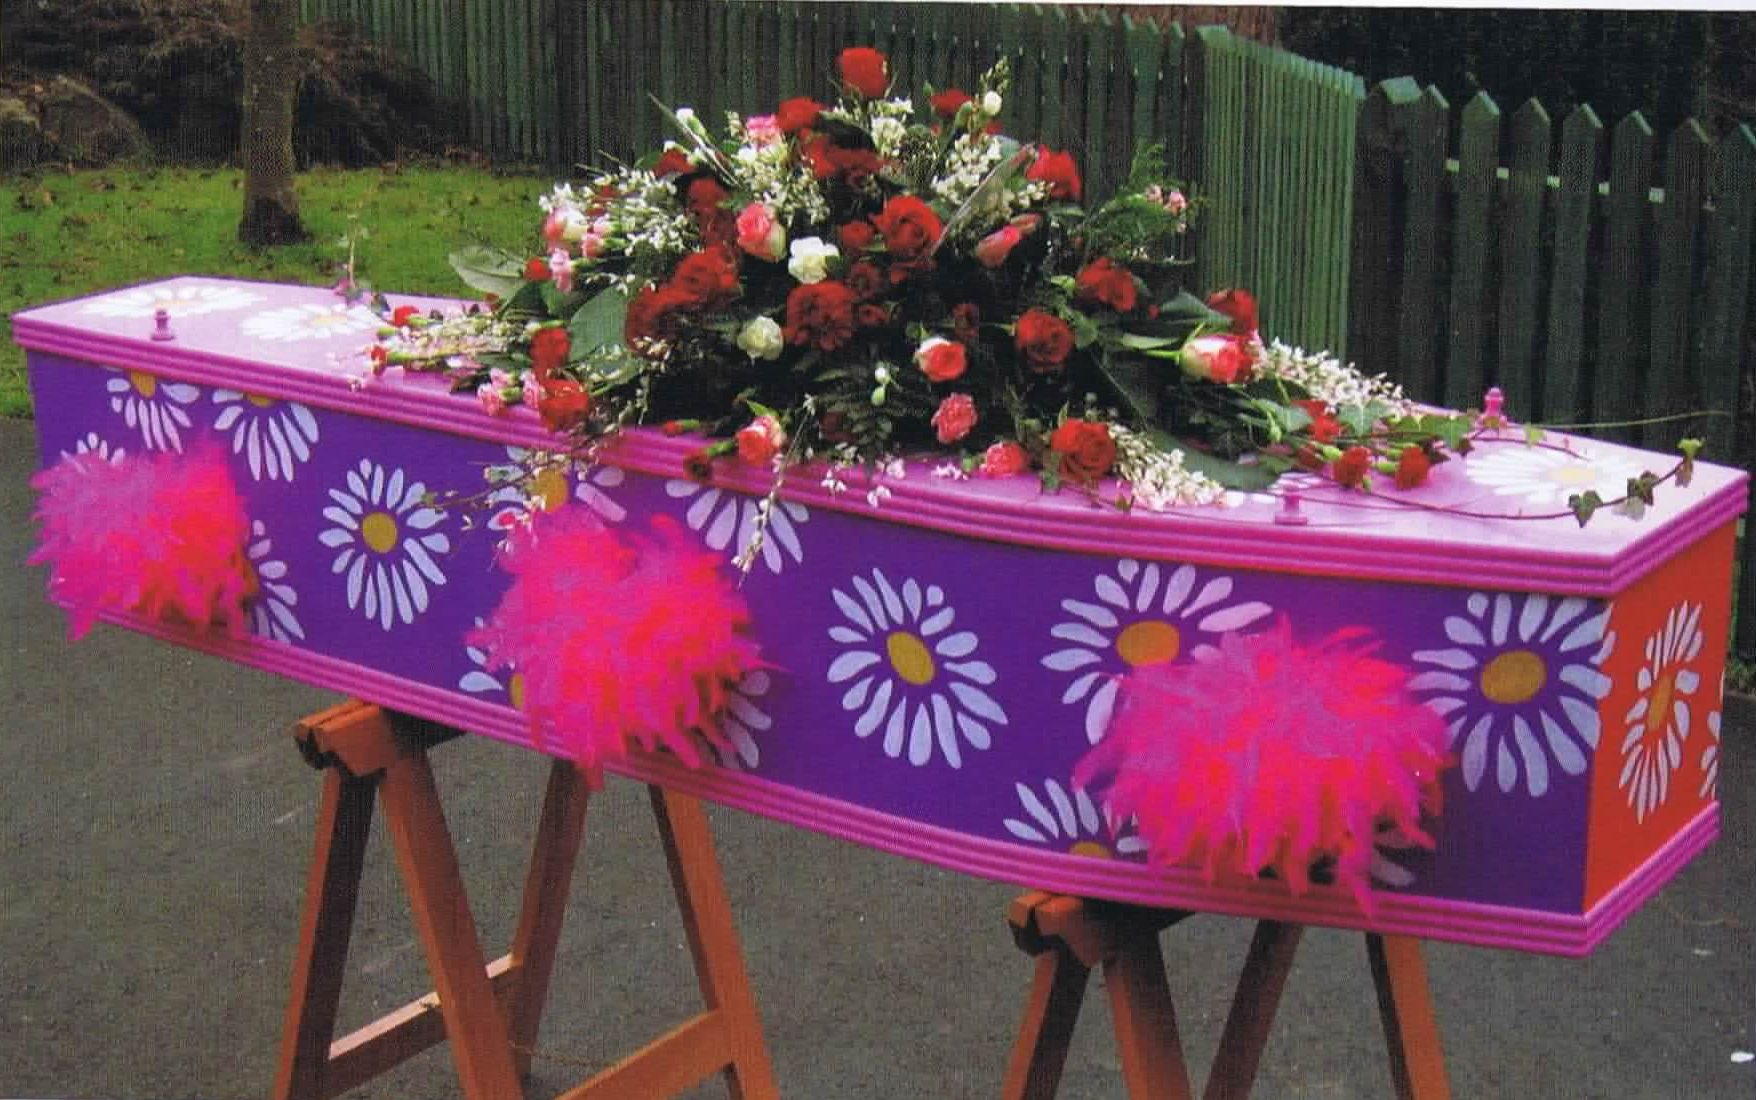 Celebrancy comes to italy wanted in rome a painted coffin provides an alternative and colourful farewell izmirmasajfo